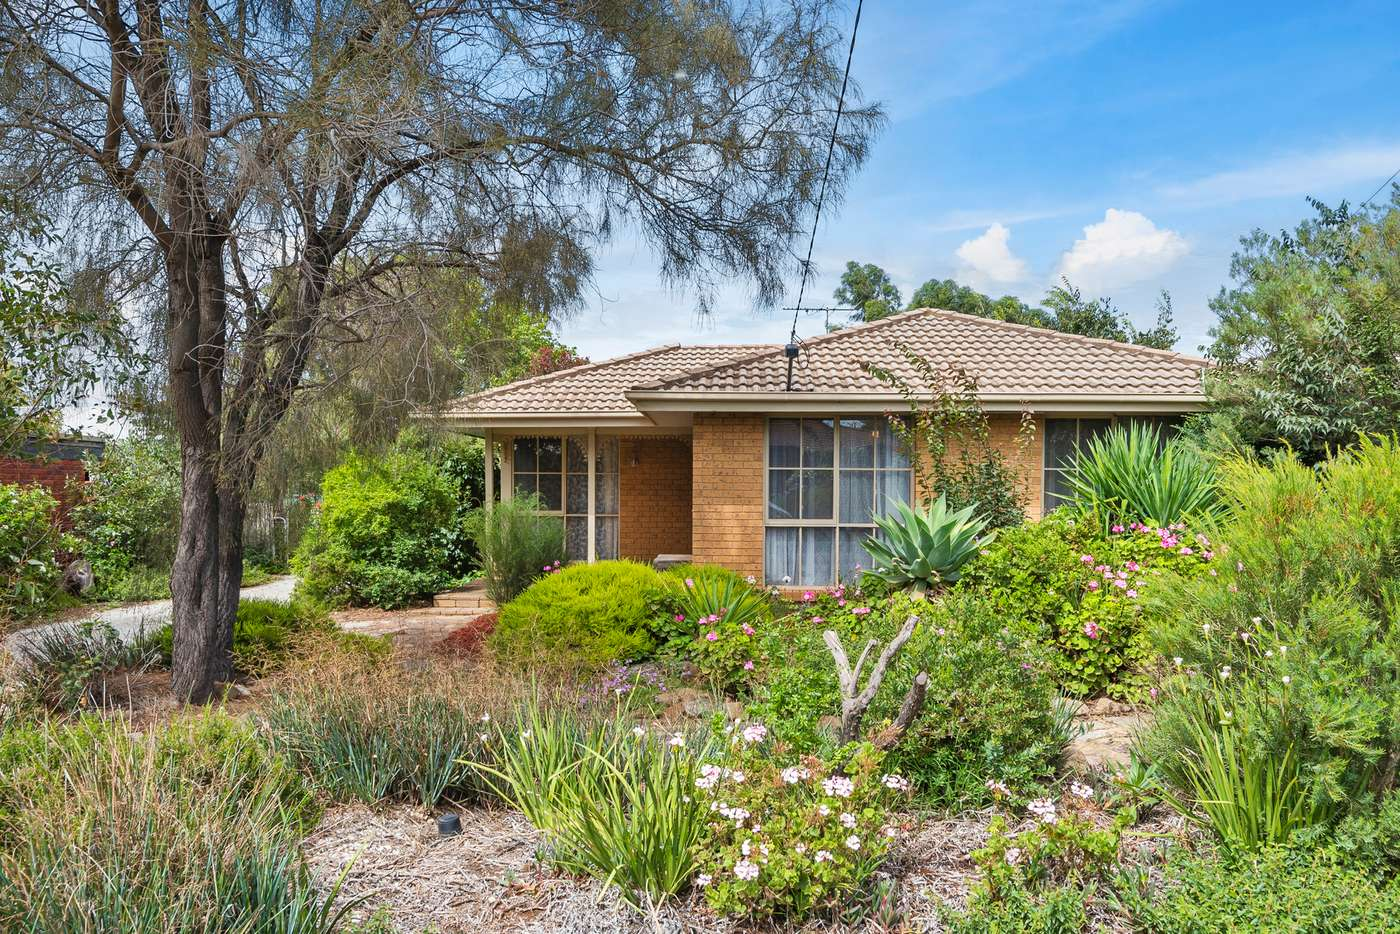 Main view of Homely house listing, 18 Leila Court, Bacchus Marsh VIC 3340